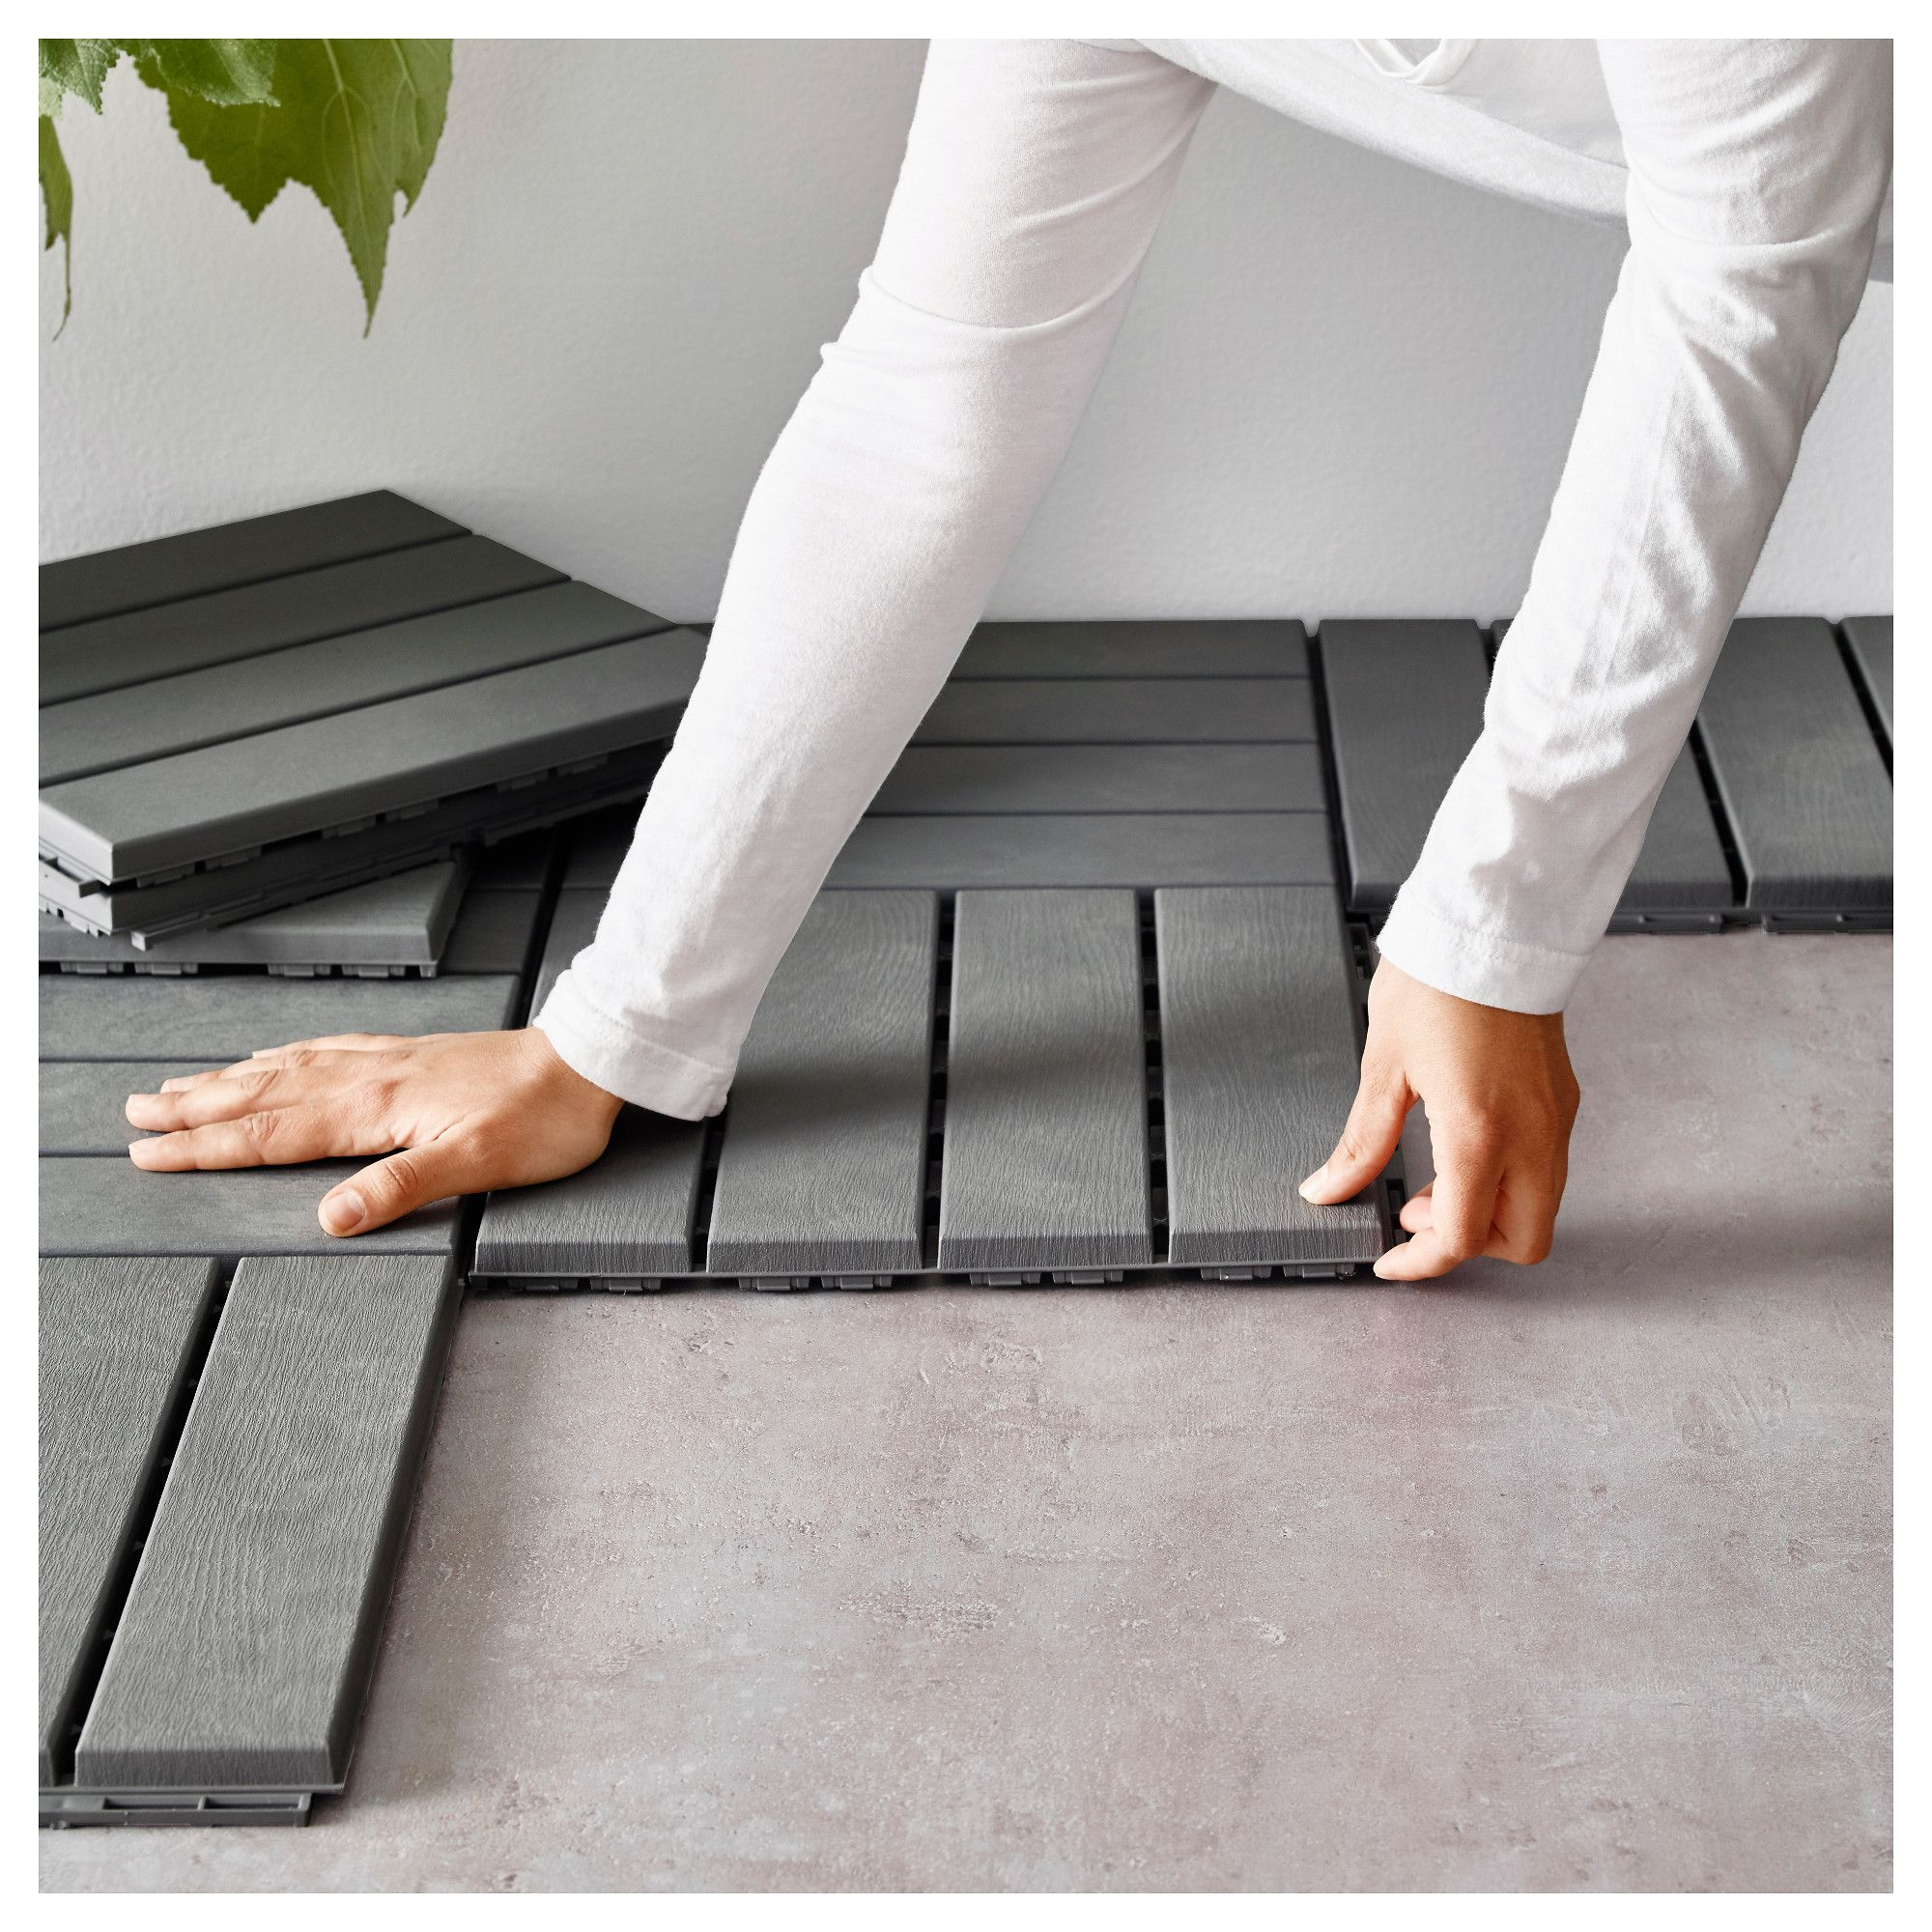 Delightful IKEA RUNNEN Floor Decking, Outdoor Floor Decking Makes It Easy To Refresh  Your Terrace Or